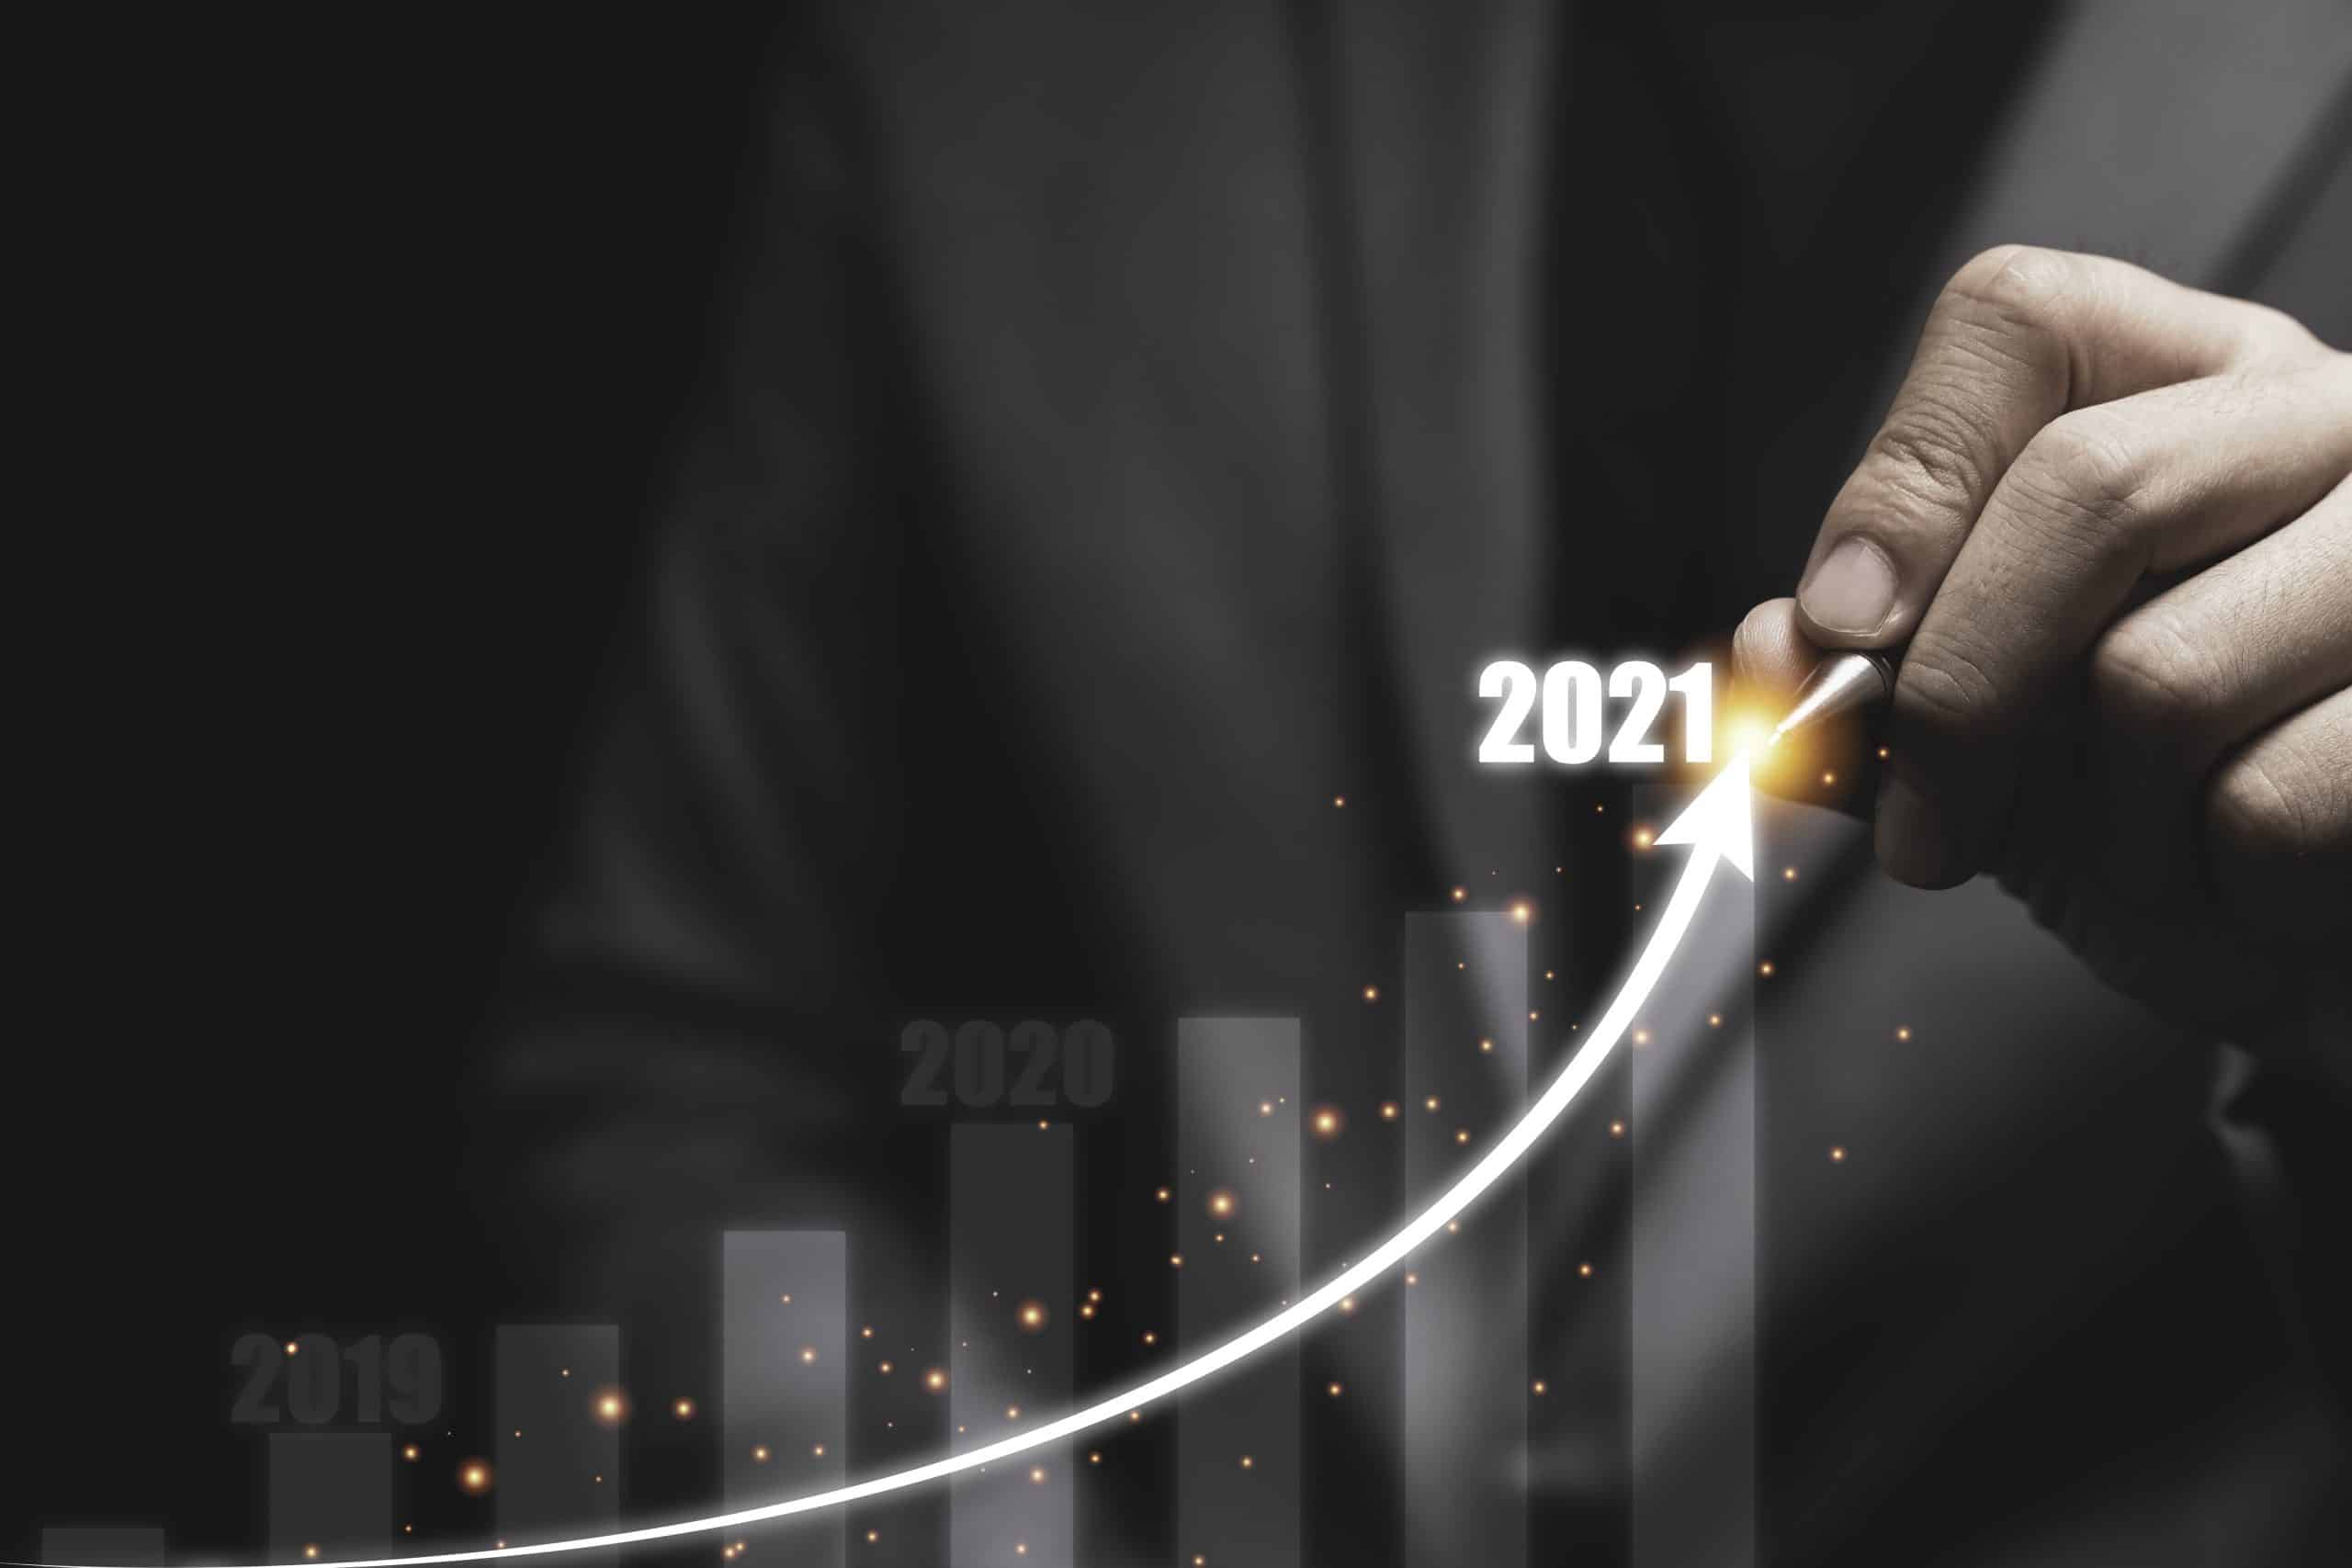 Business growth in 2021